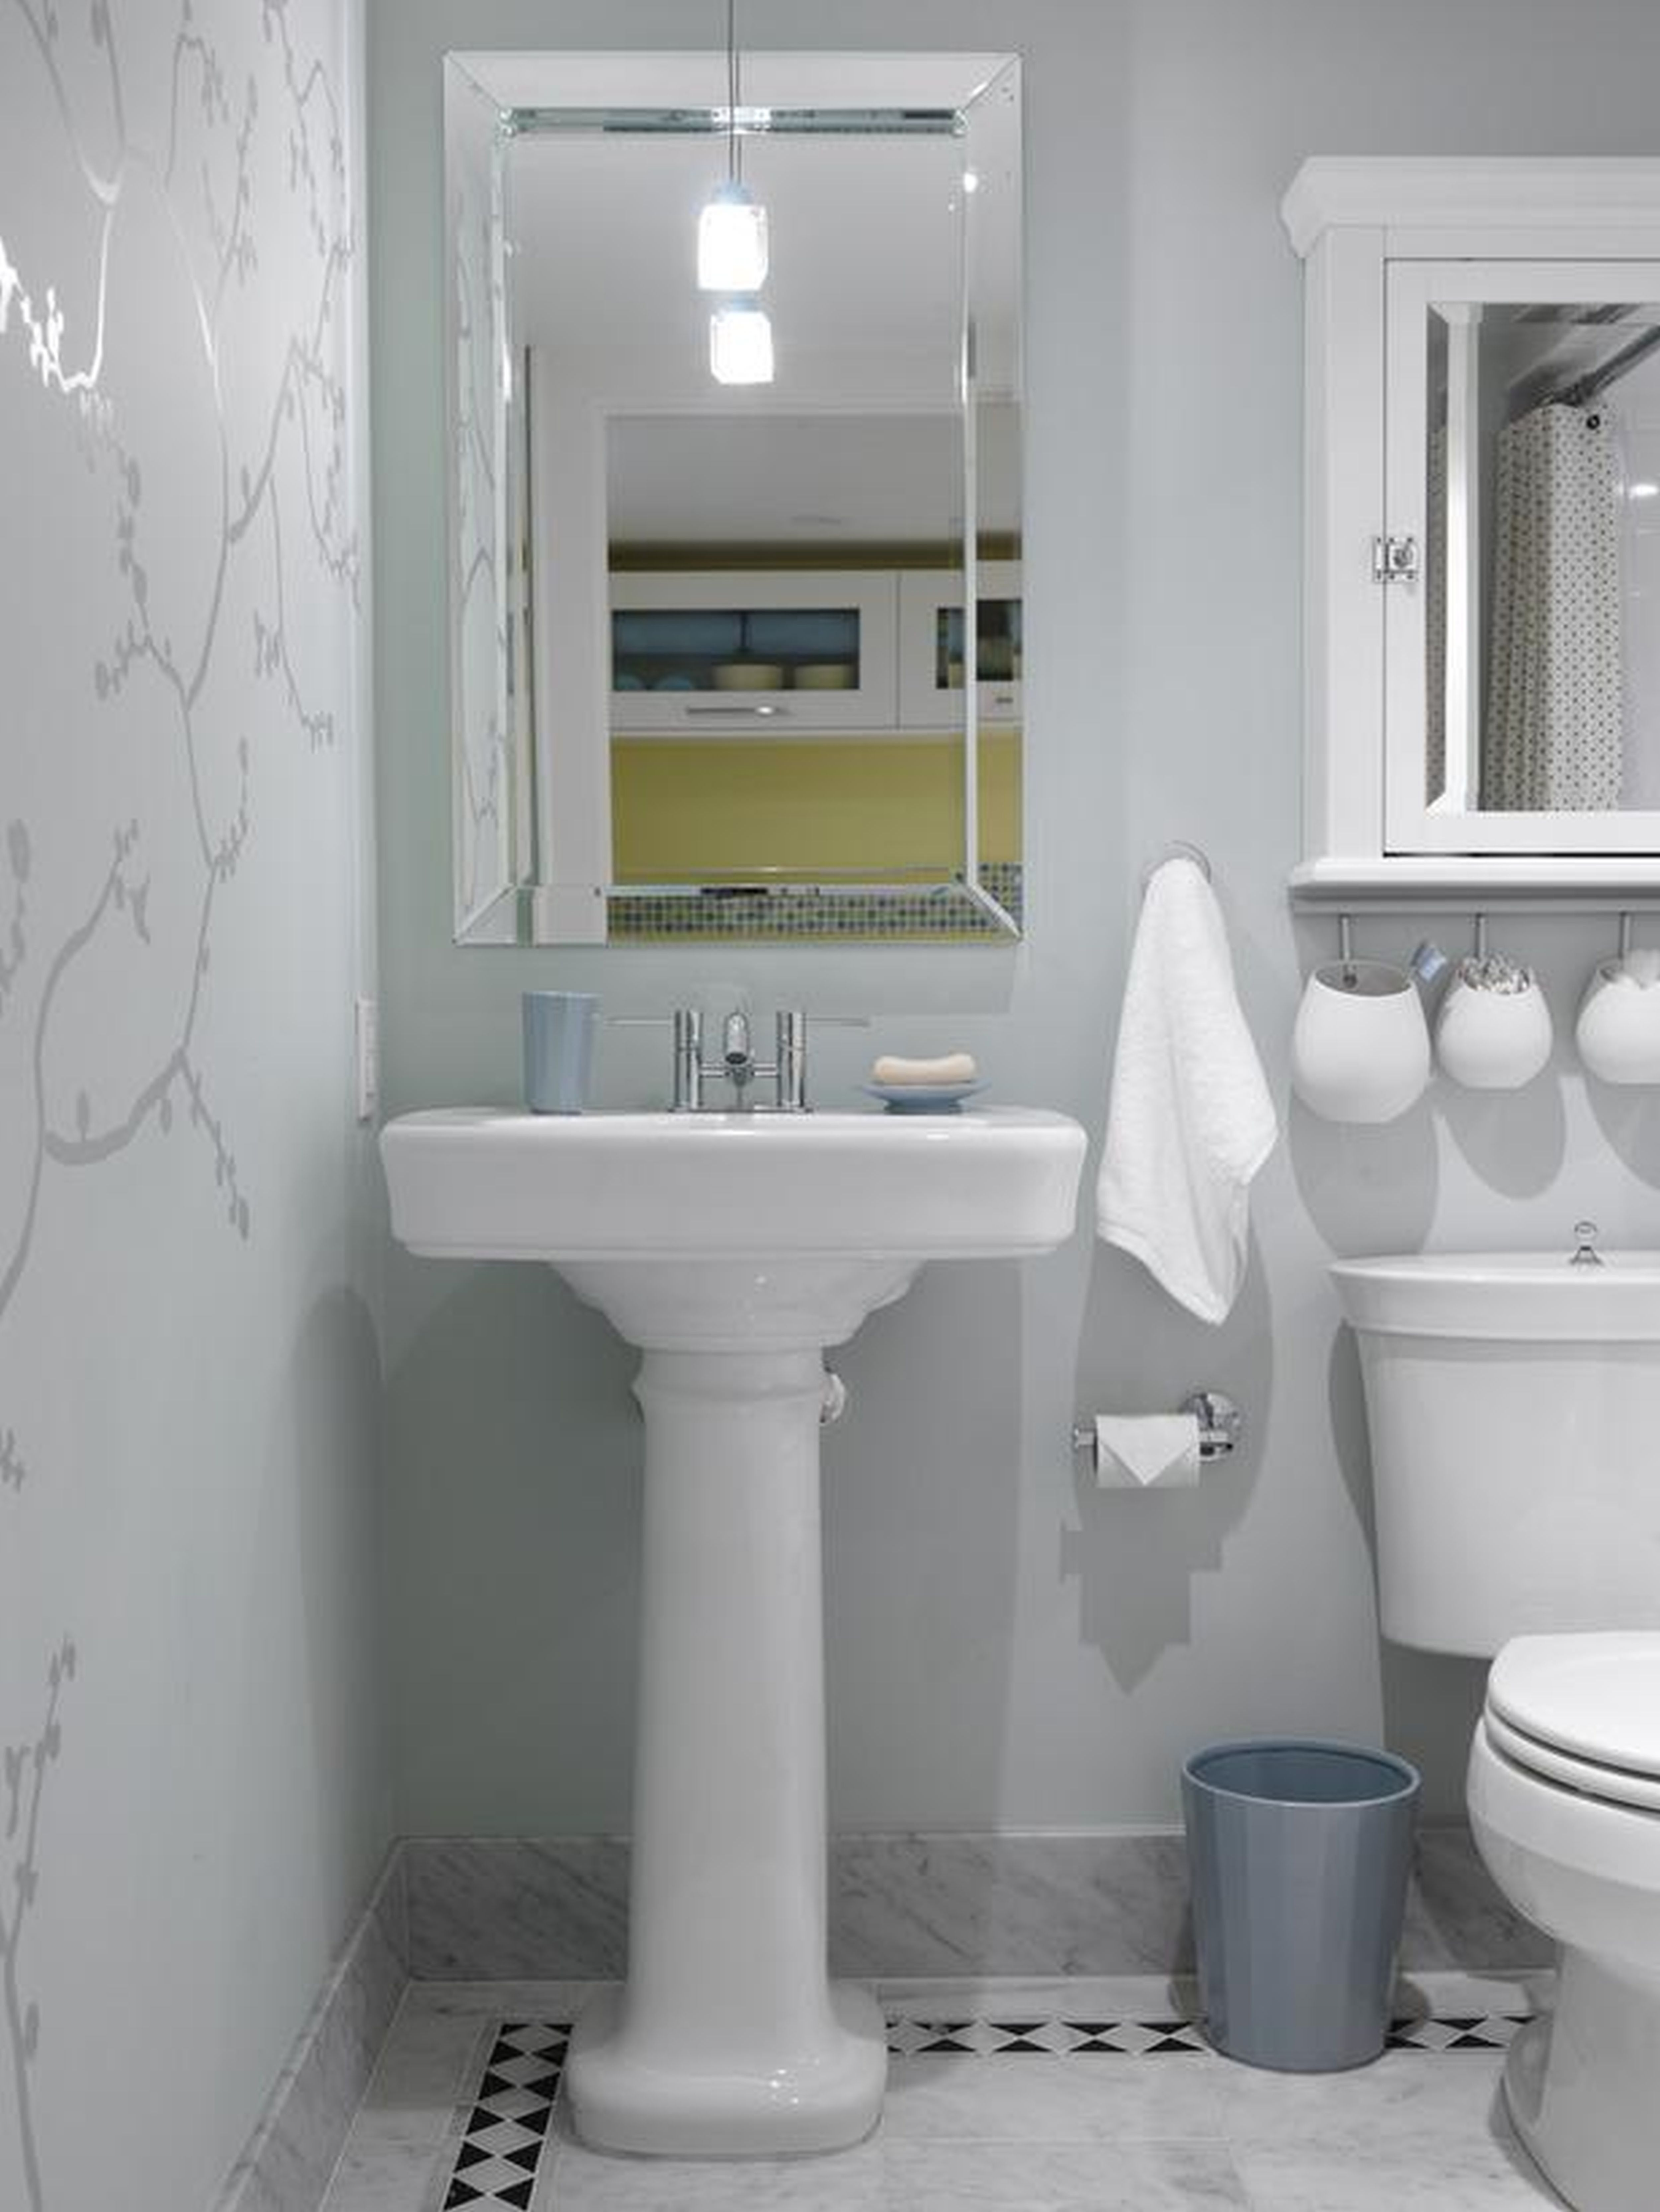 Small Bathroom Space Ideas - HomesFeed on Small Space Small Bathroom Ideas  id=83250